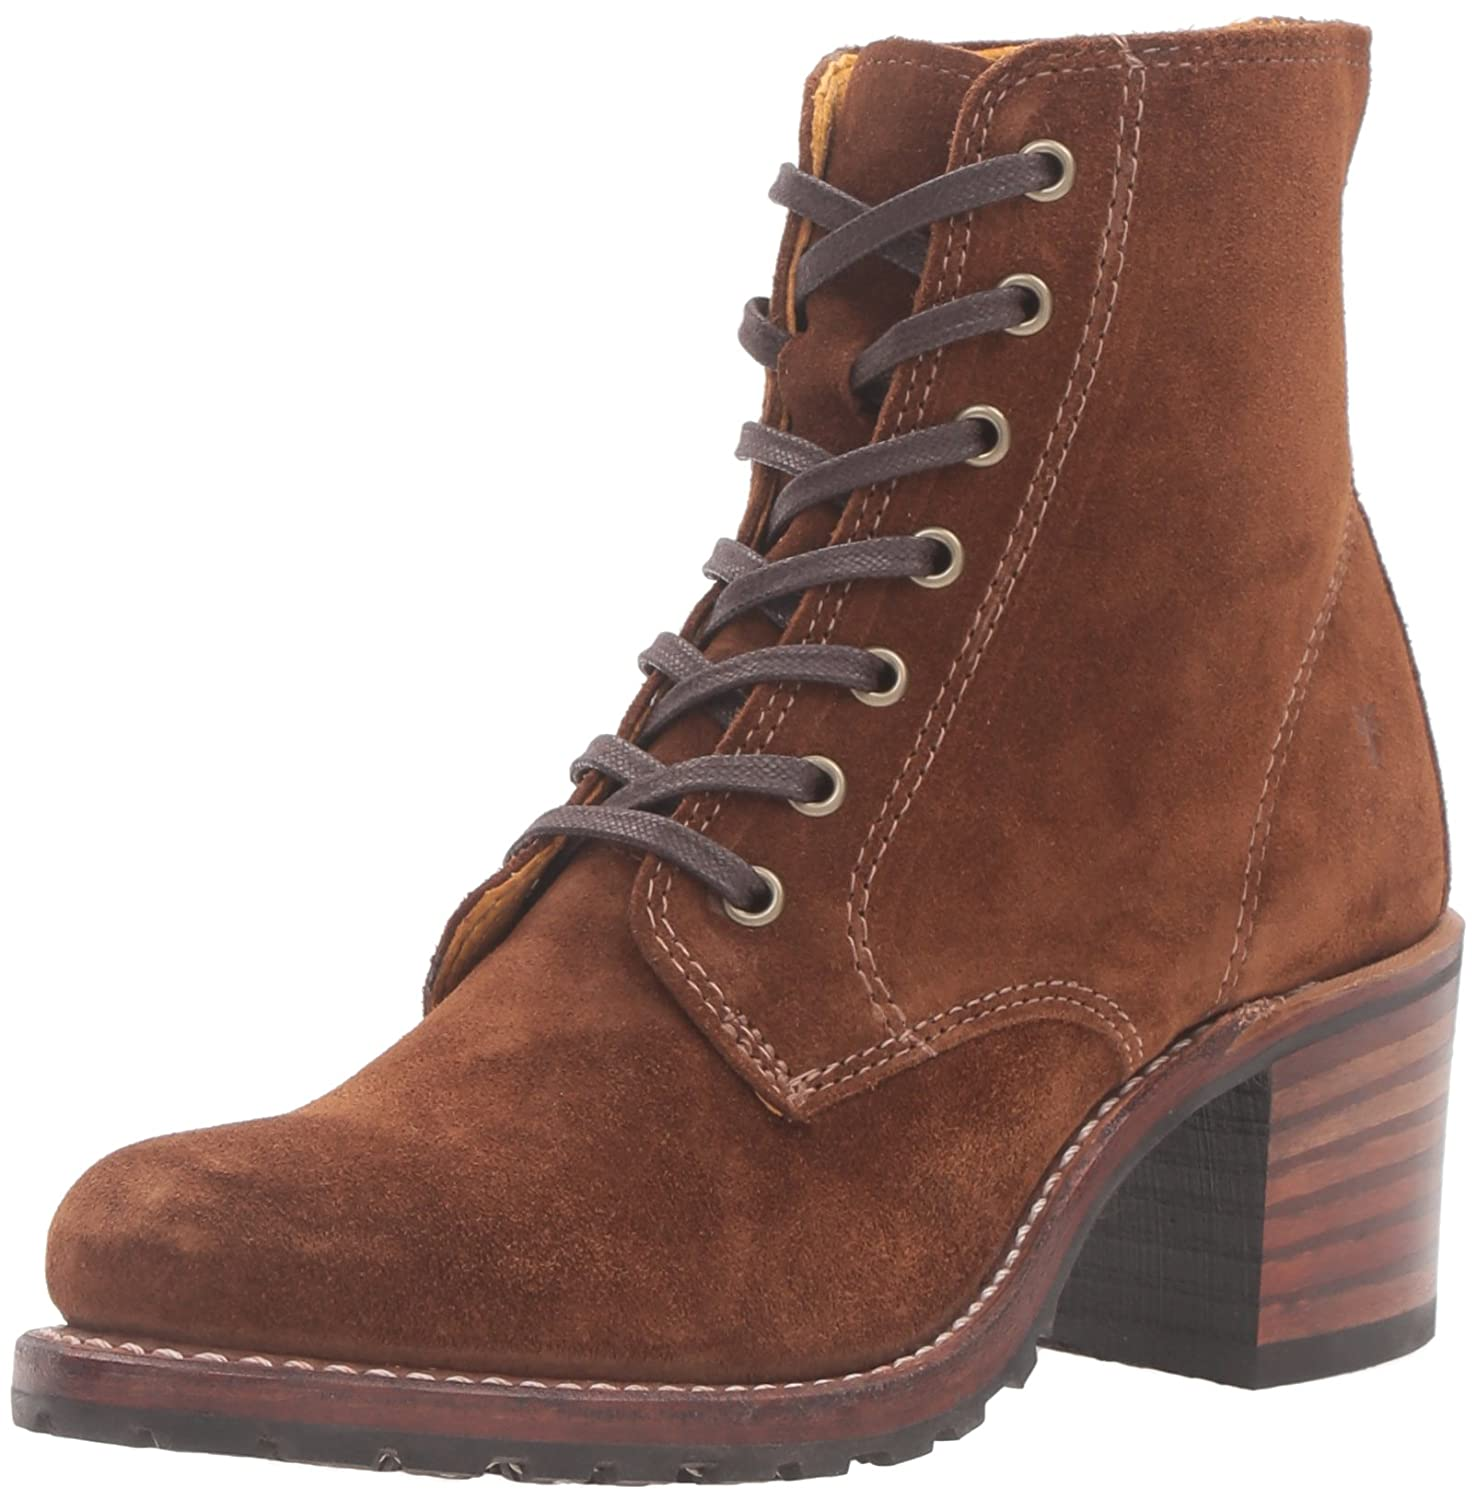 FRYE Women's Sabrina 6G Lace up Suede Boot B0194490R6 7 B(M) US|Wood